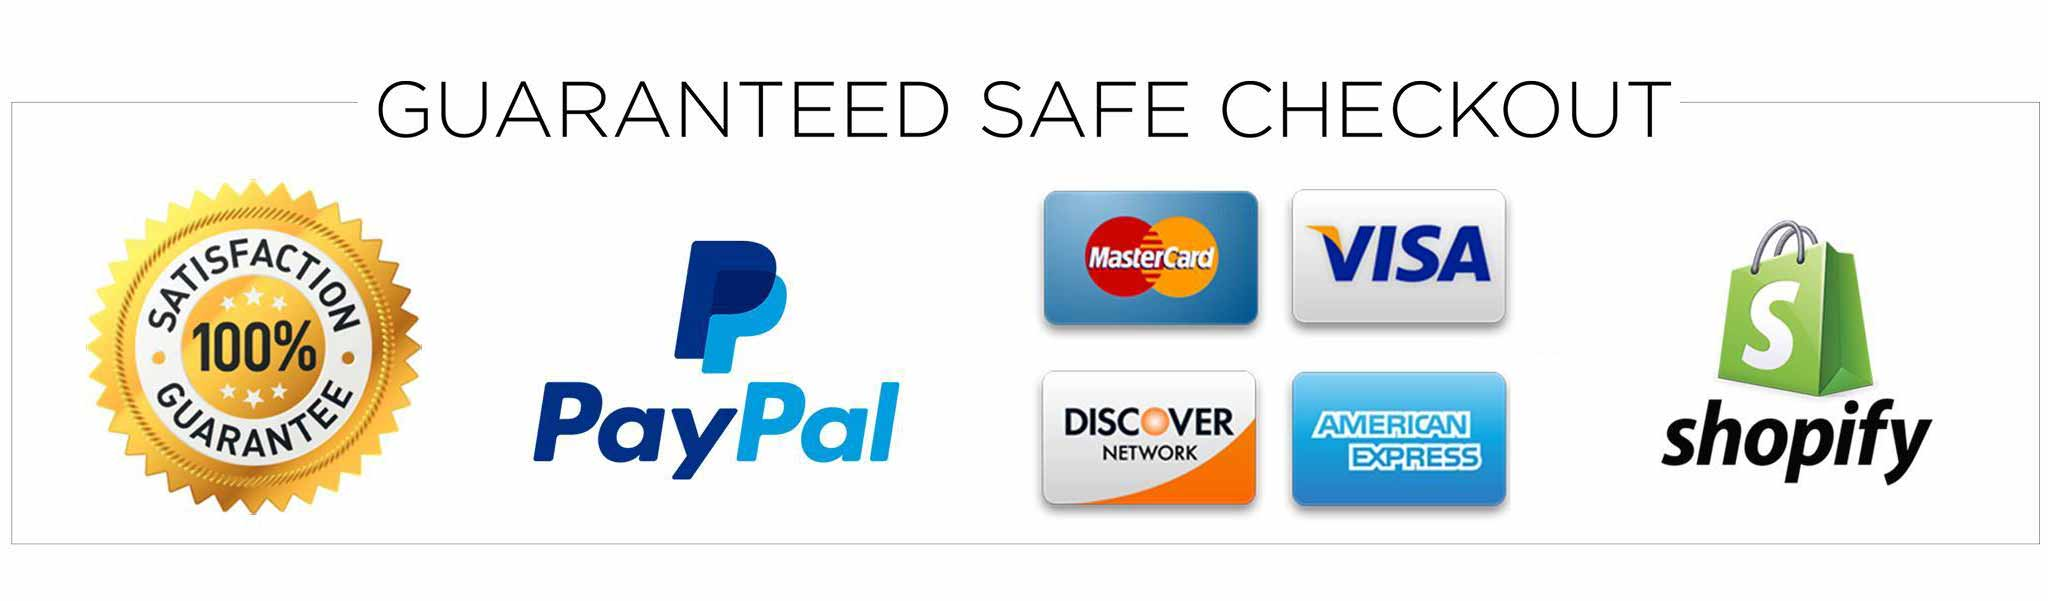 Trusted Online Security From Shopify